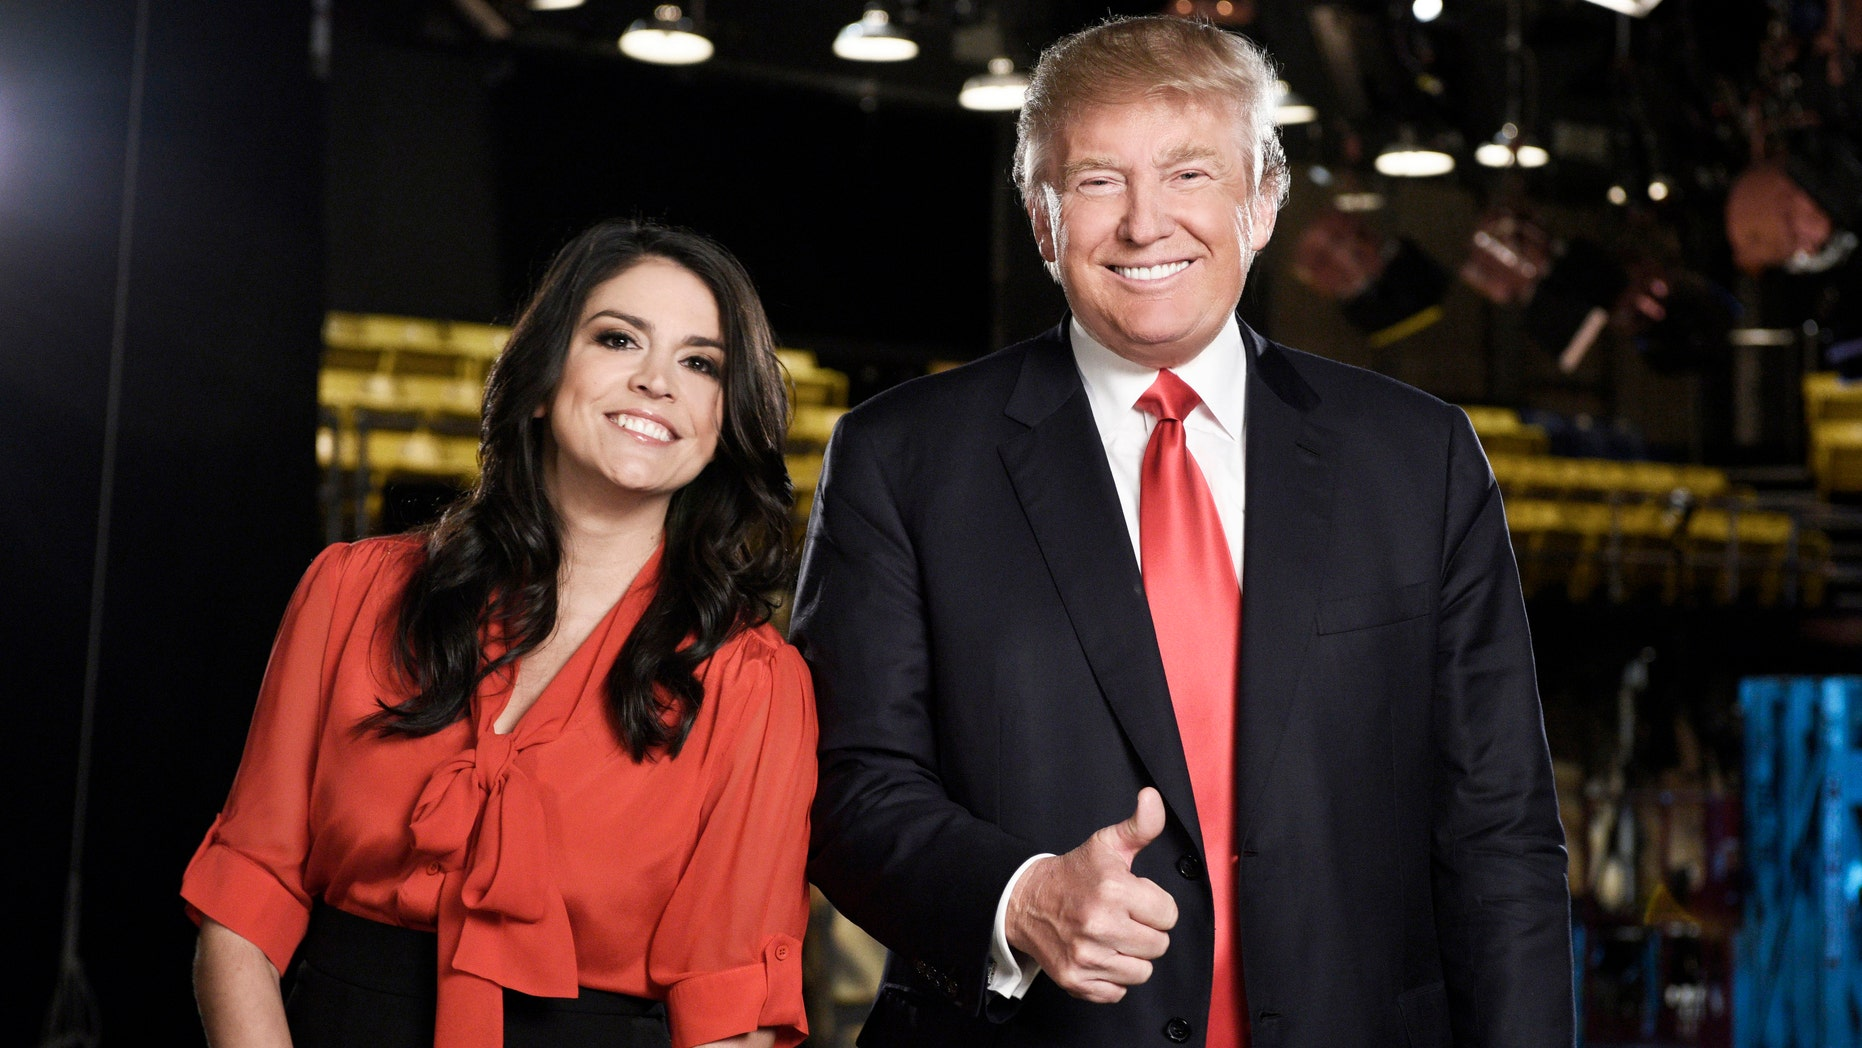 """Saturday Night Live"" cast member Cecily Strong, left, and Republican presidential candidate Donald Trump in New York. Trump will host the show on Nov. 7."